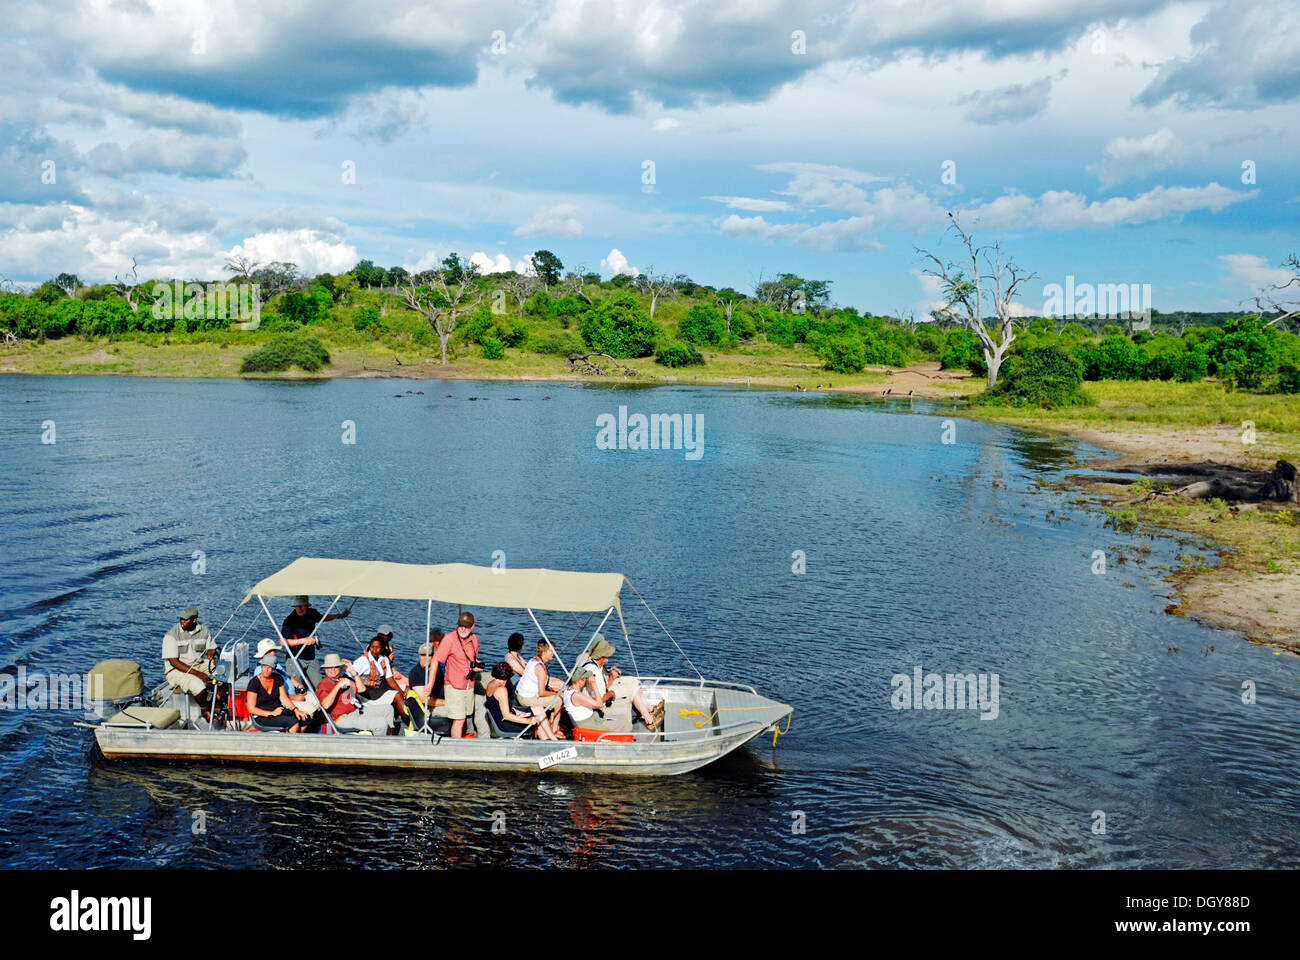 Safari on the Chobe River, boat trip with tourists in the Chobe National Park near Kasane, Botswana, Africa - Stock Image